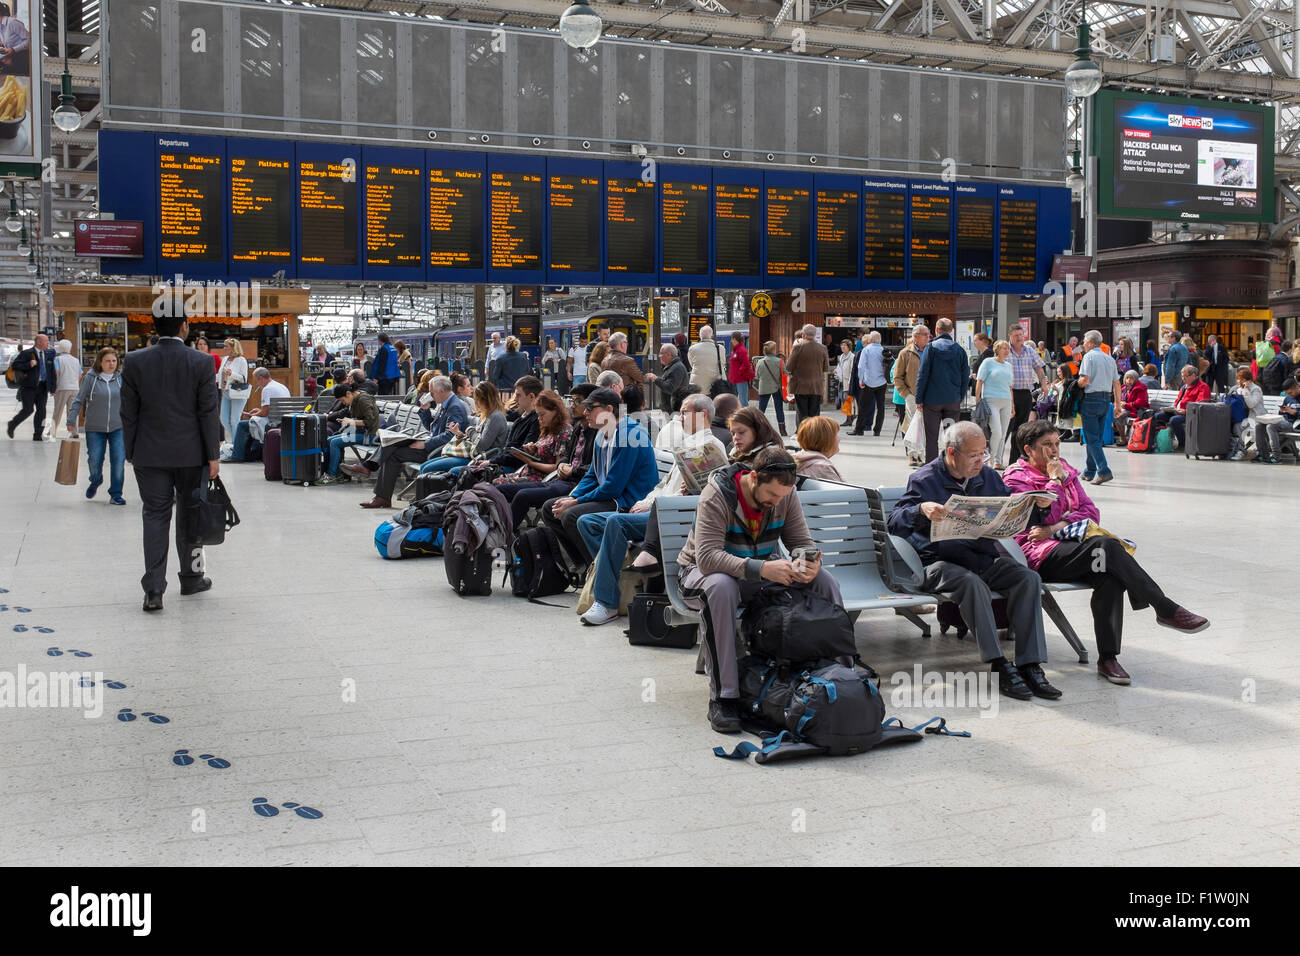 Main platform concourse of Glasgow Central Railway station, Glasgow, Scotland, UK - Stock Image